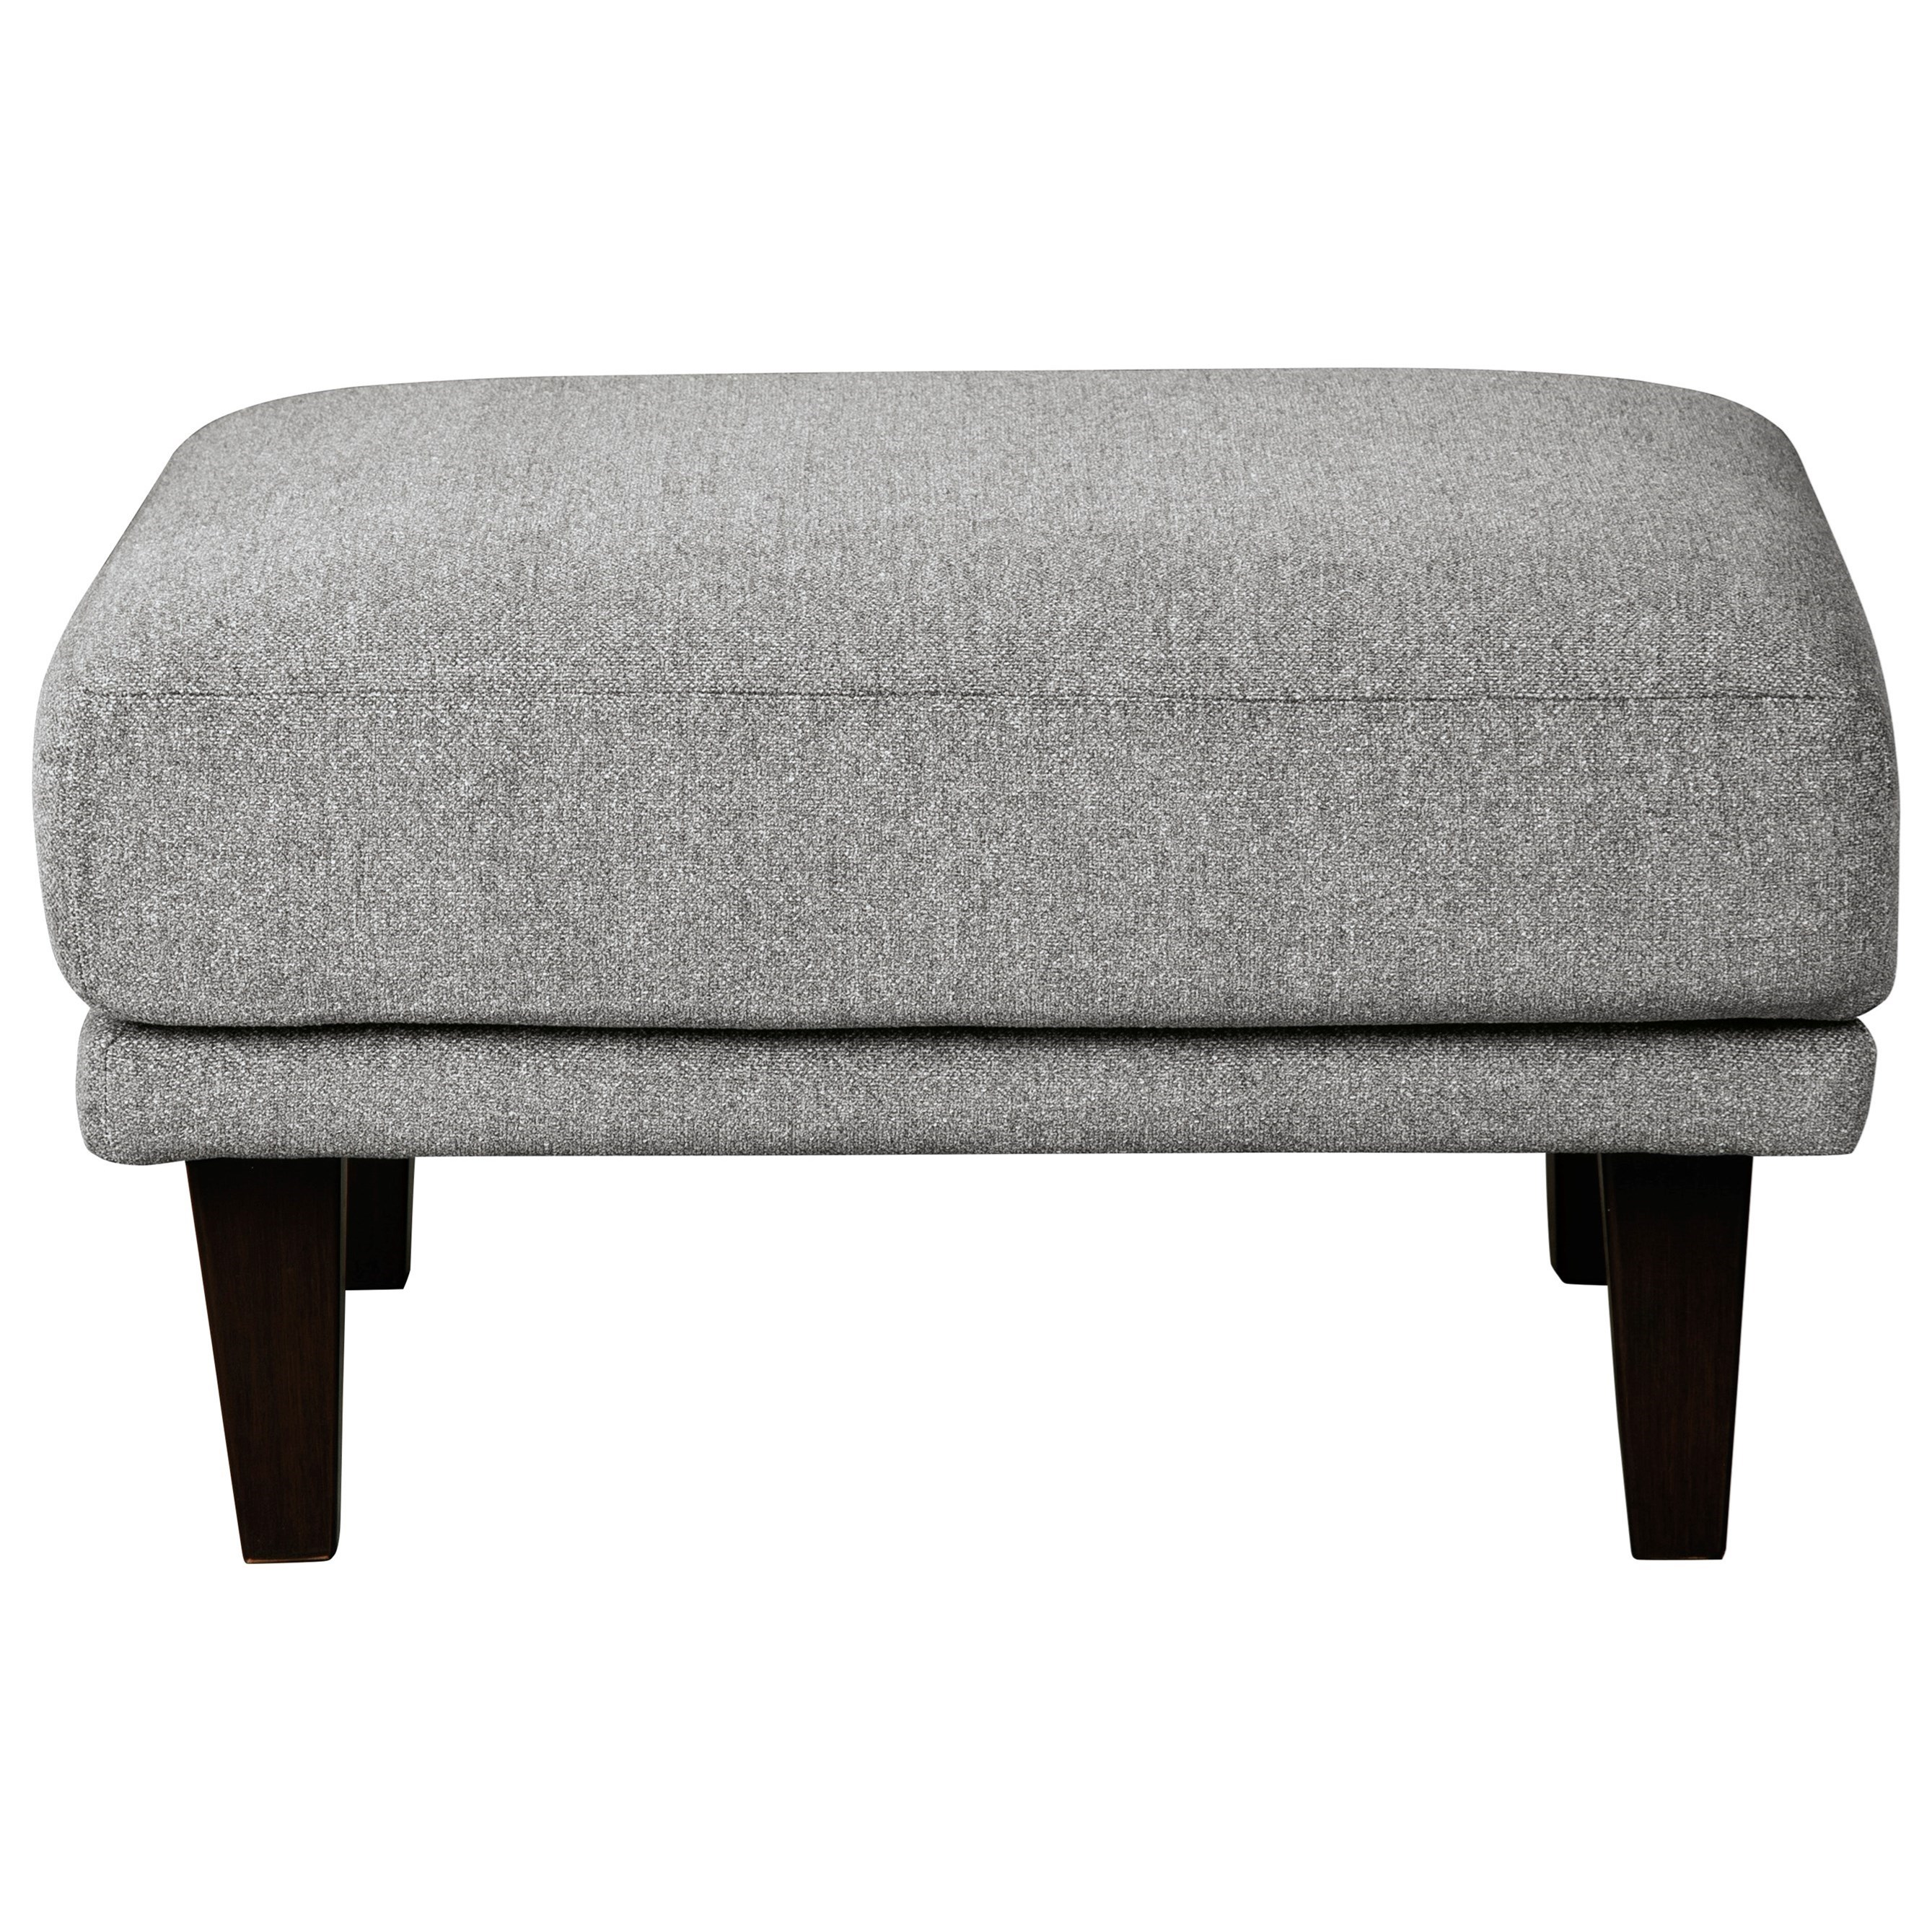 Baneway Ottoman by Signature Design by Ashley at Standard Furniture